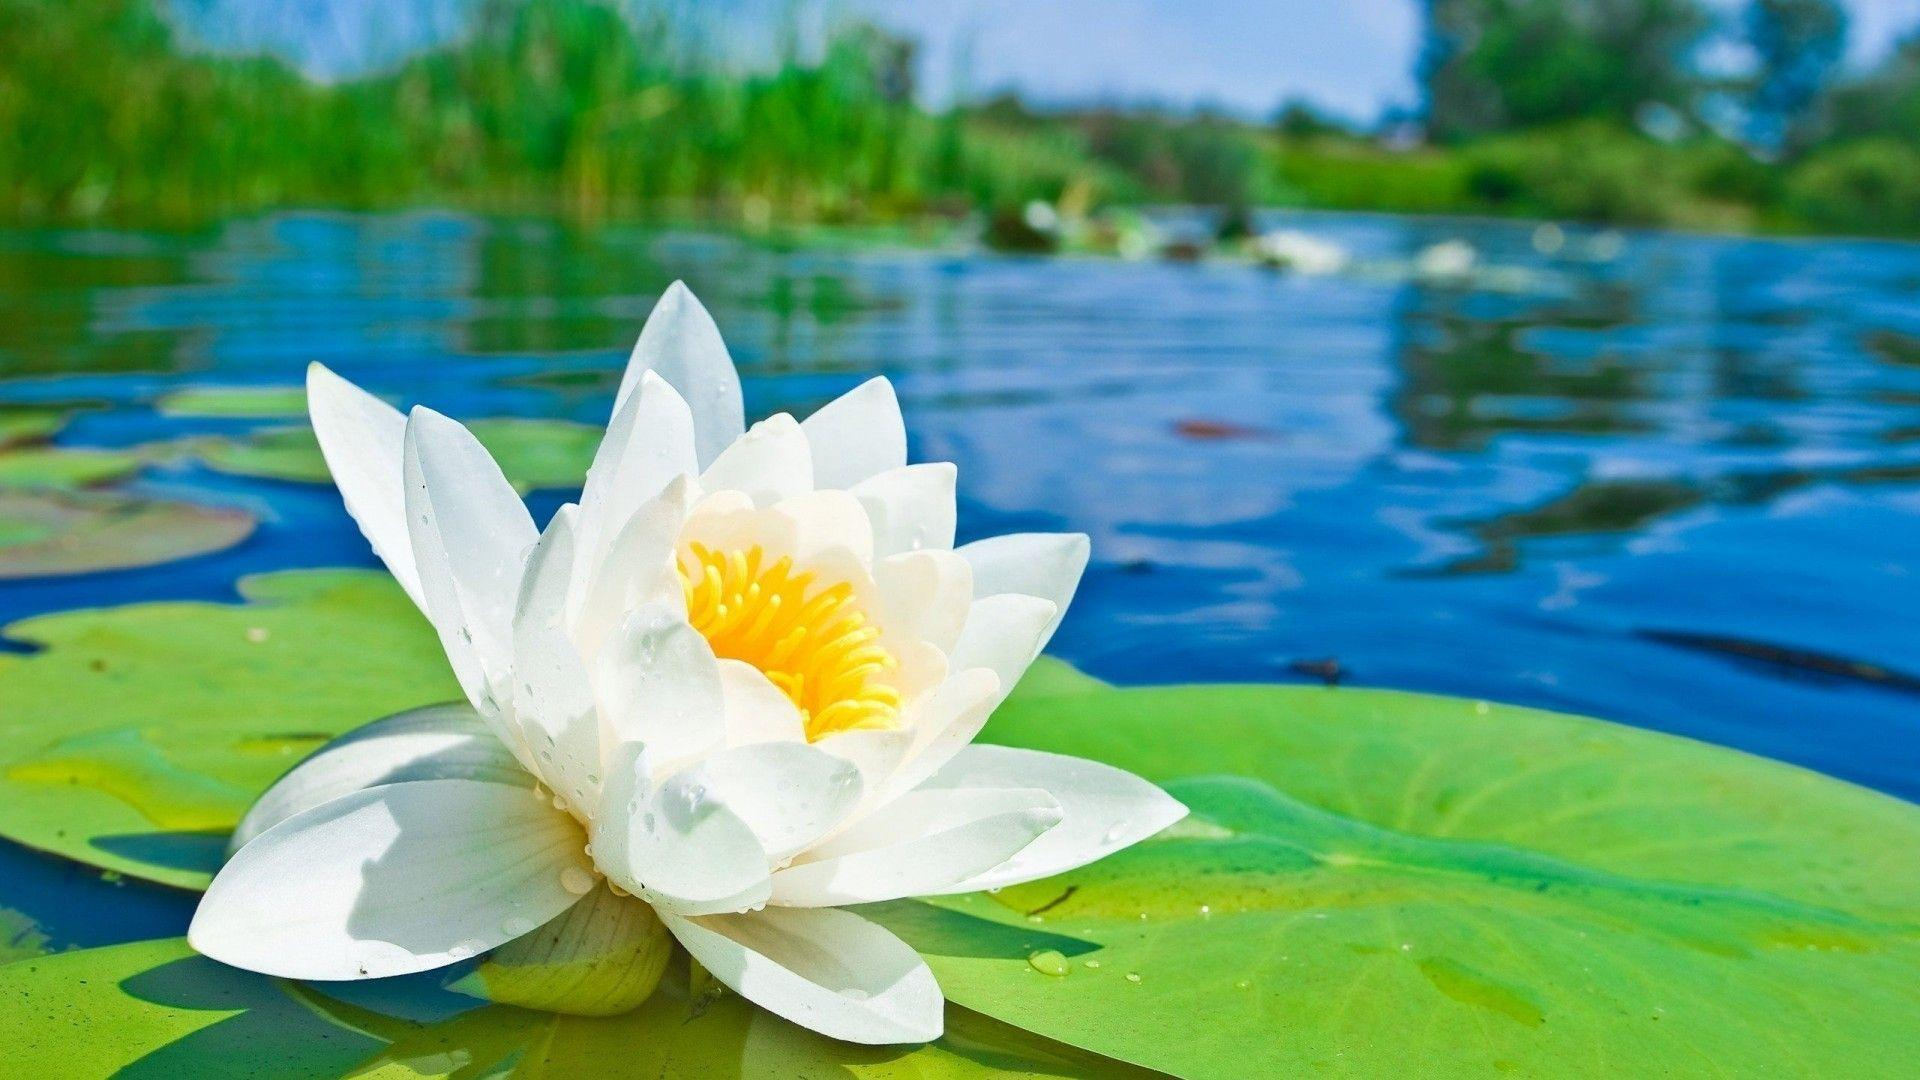 Lotus flower wallpapers wallpaper cave water lotus flower hd desktop wallpaper free free download izmirmasajfo